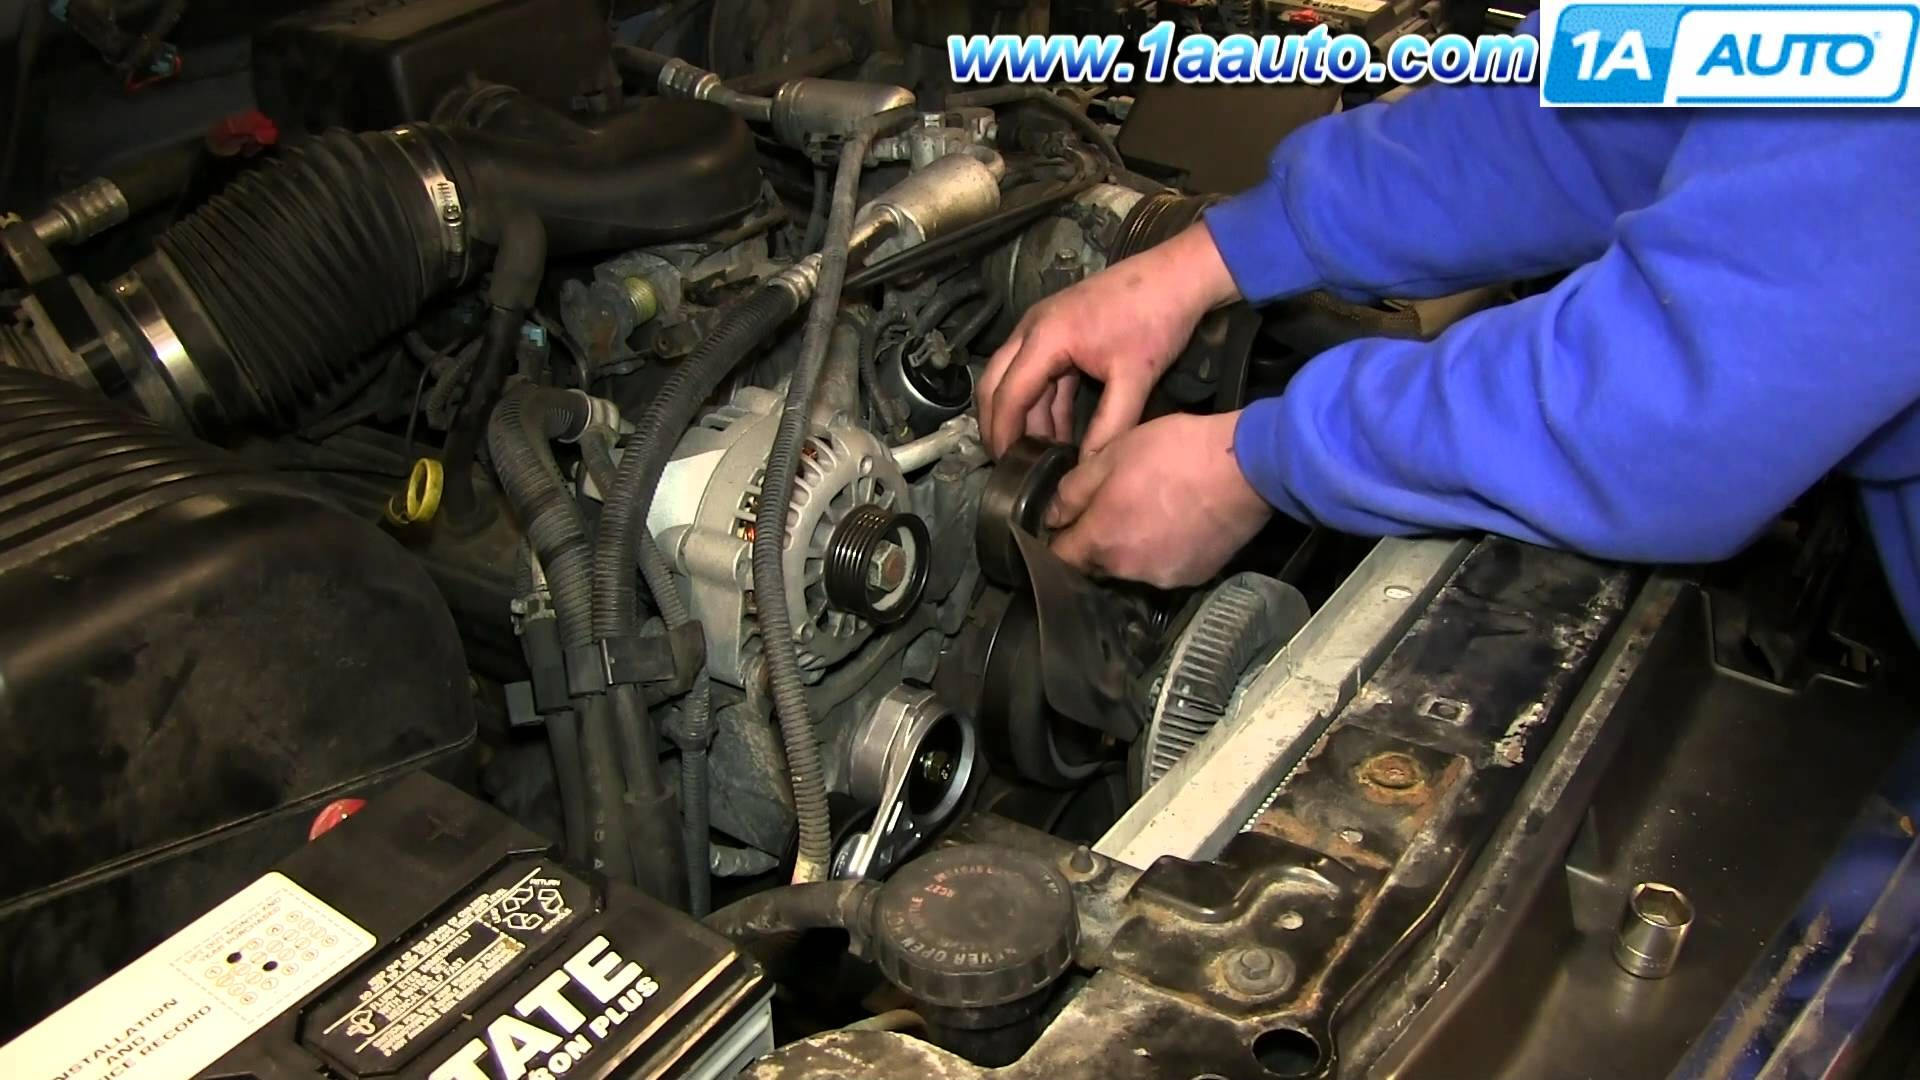 2002 Chevy Tahoe Engine Diagram 1995 Chevrolet Tahoe System ... on